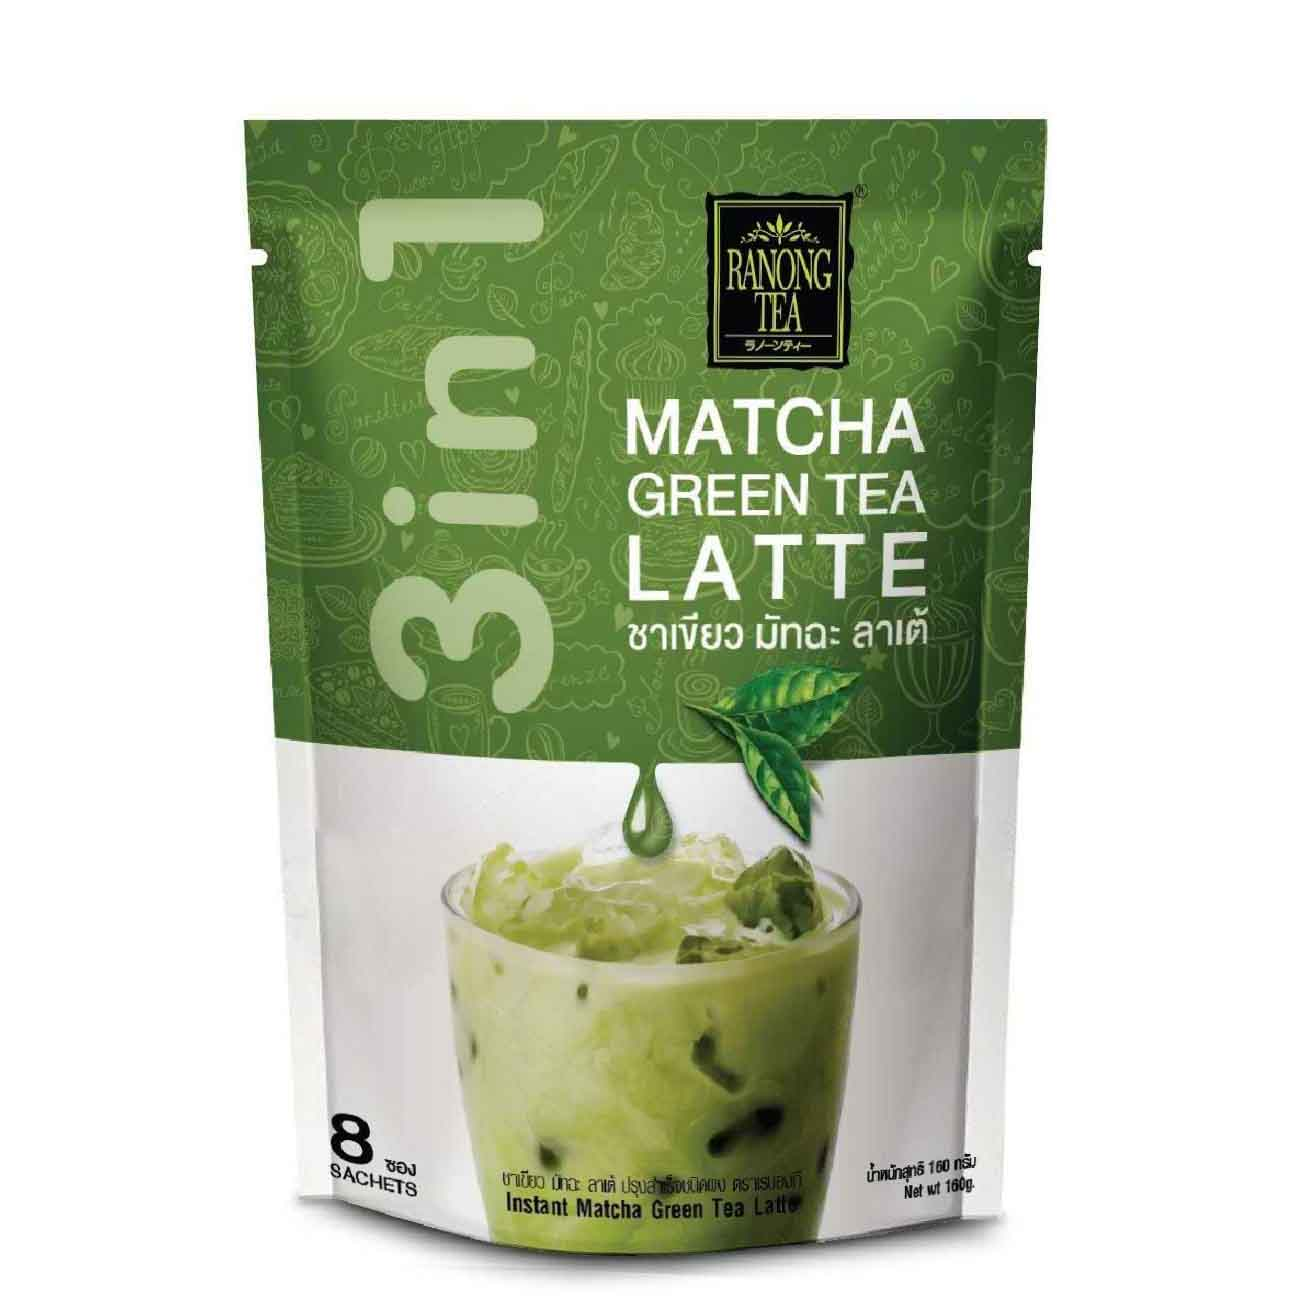 Ranong Tea 3 in 1 Instant Matcha Green Tea Latte 5.64 Oz (160 g)